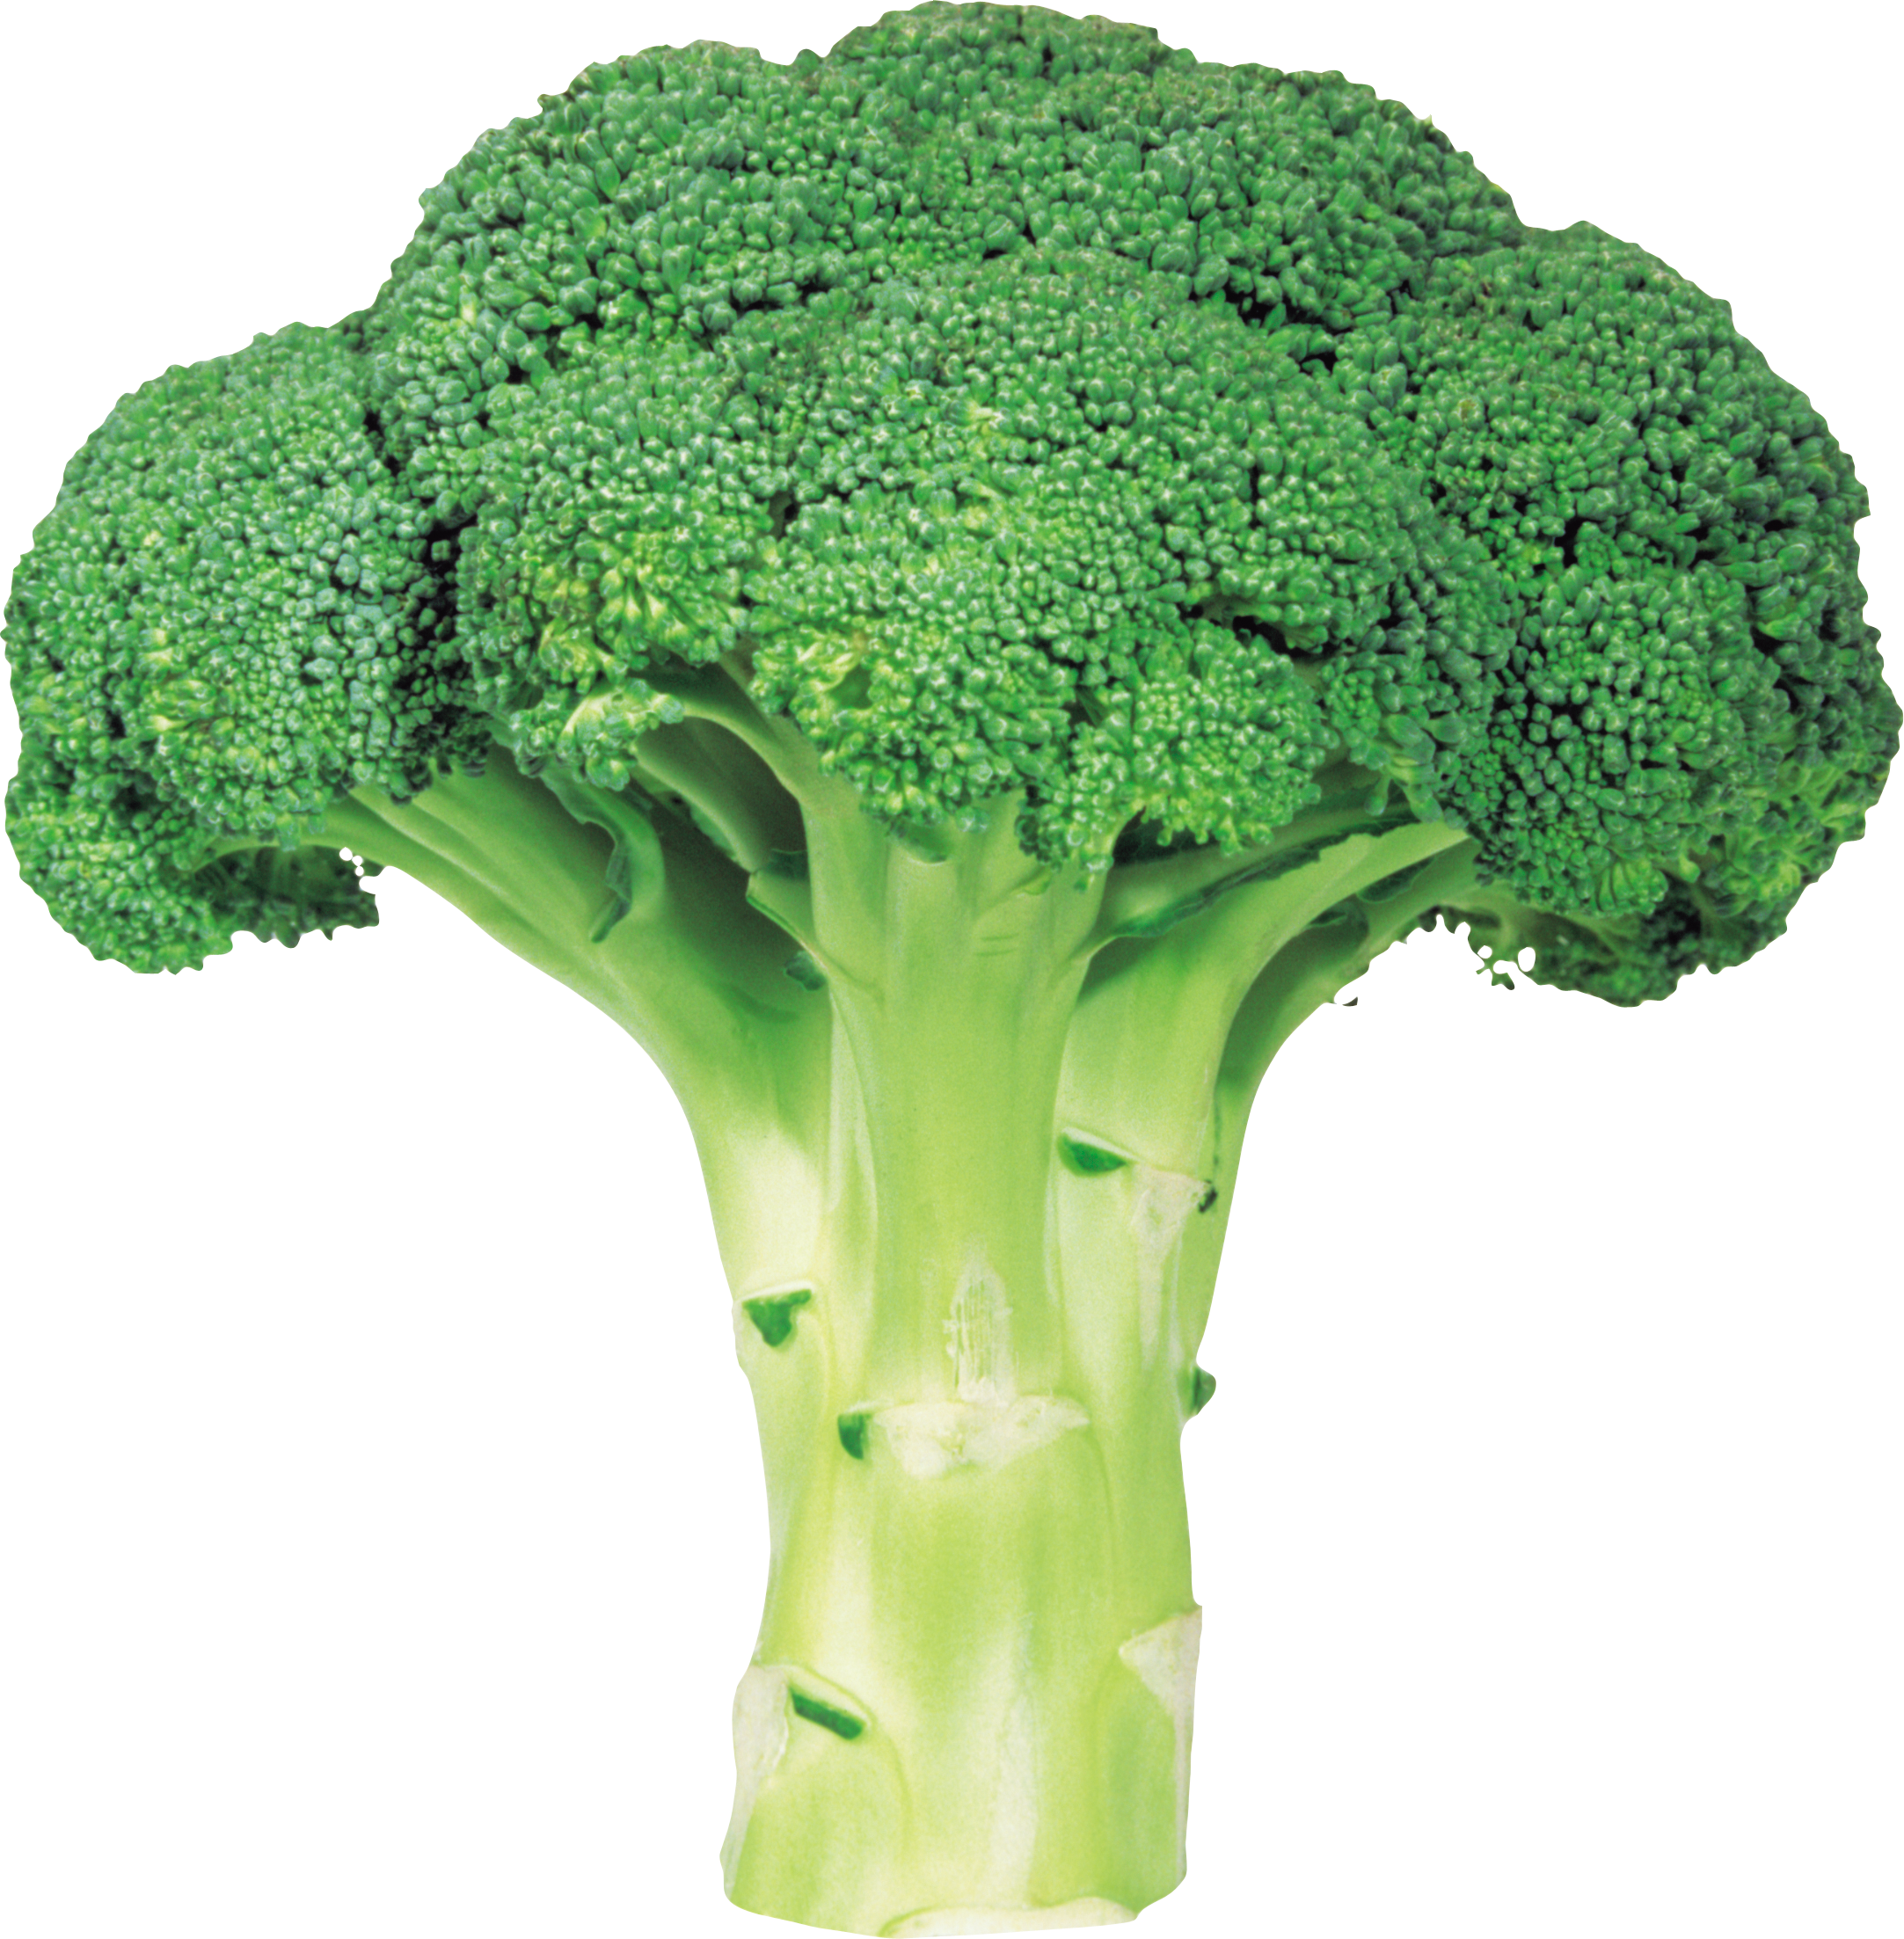 Broccoli google search final. Vegetables clipart cabbage